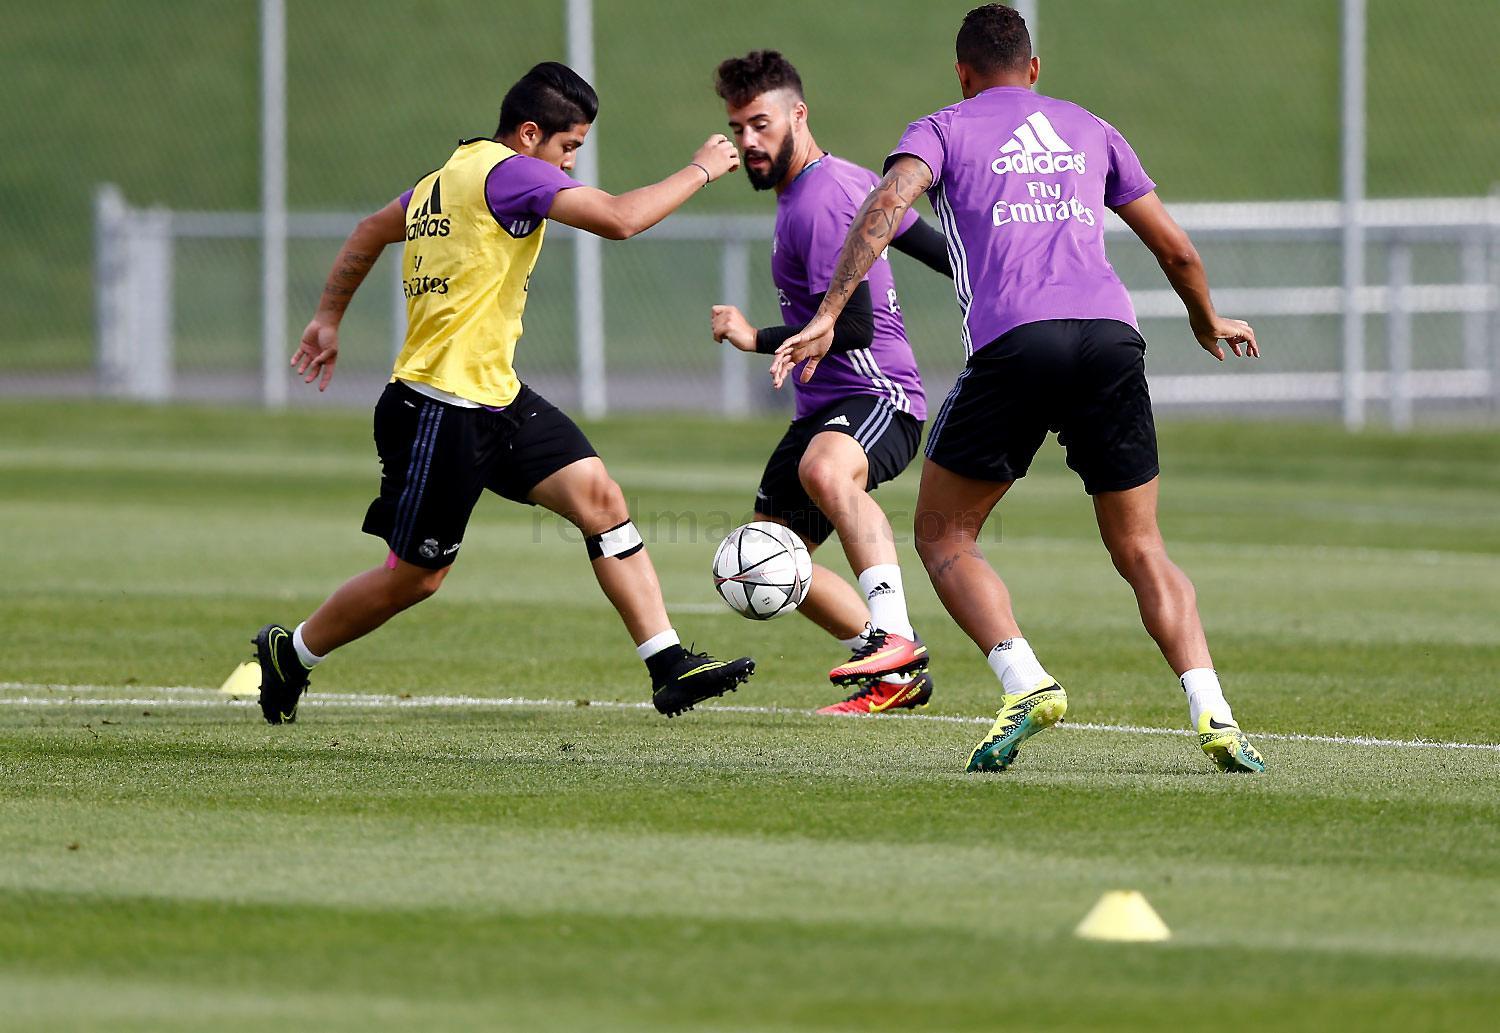 Real Madrid - Entrenamiento del Real Madrid en Montreal - 23-07-2016